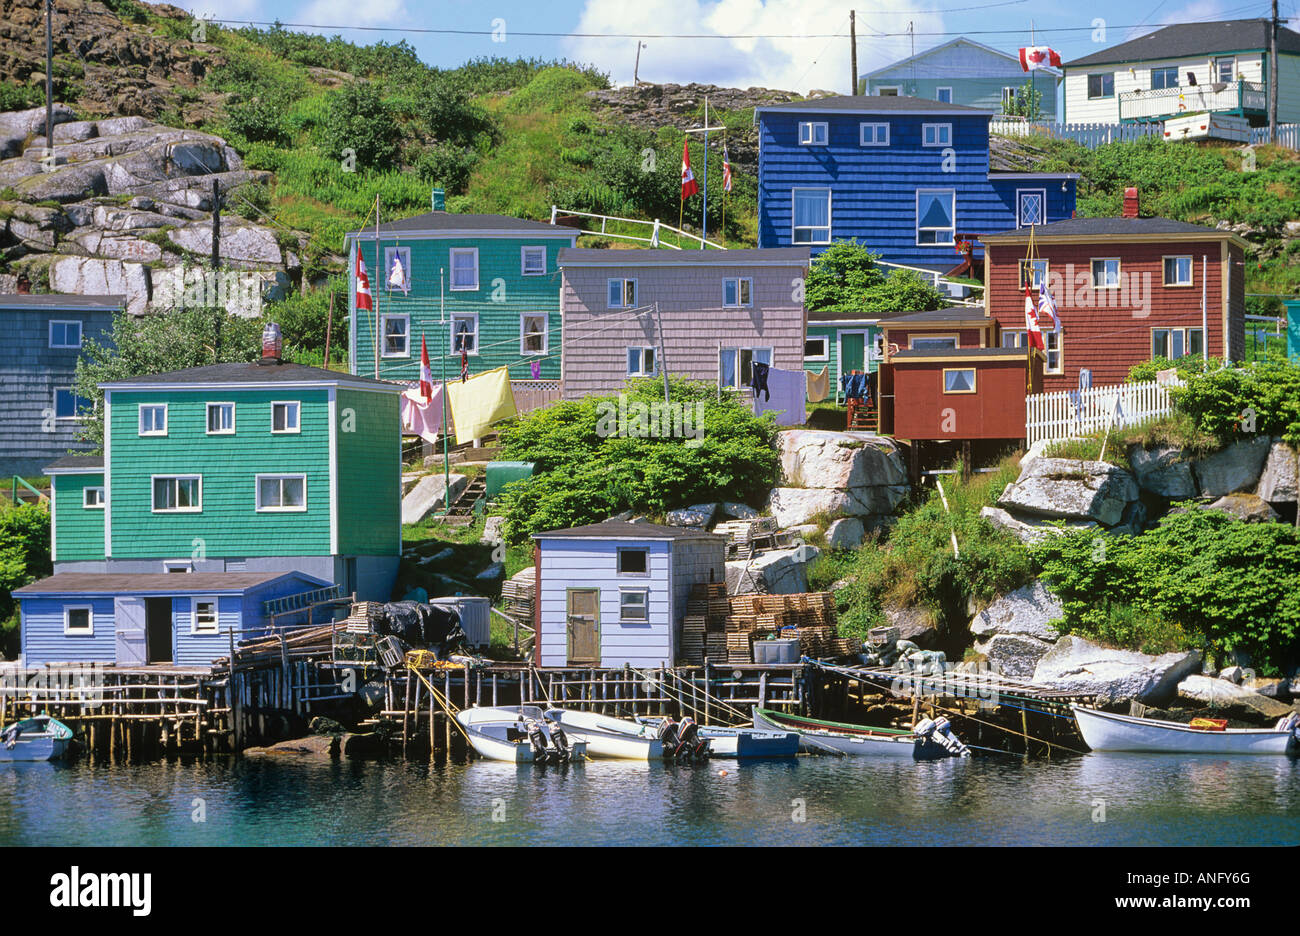 Brightly painted houses in fishing village of Rose Blanche, Newfoundland, Canada. - Stock Image